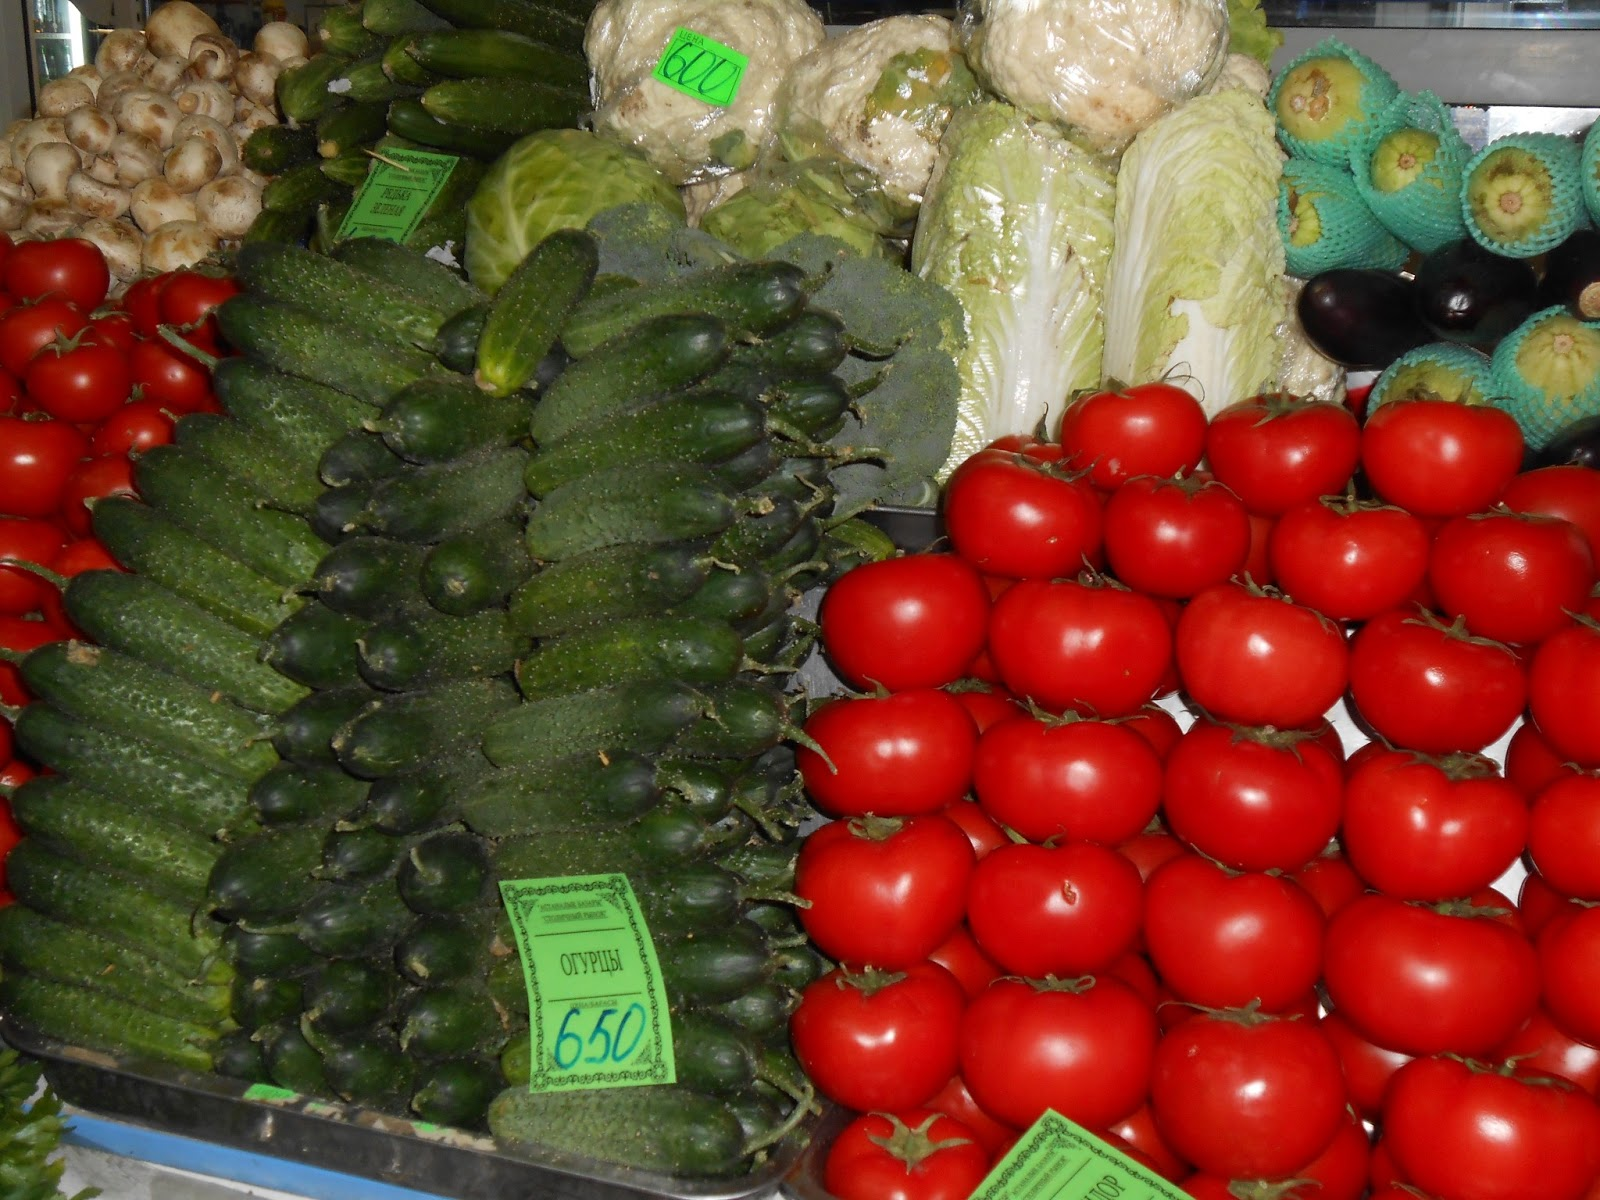 Astana Vegetables